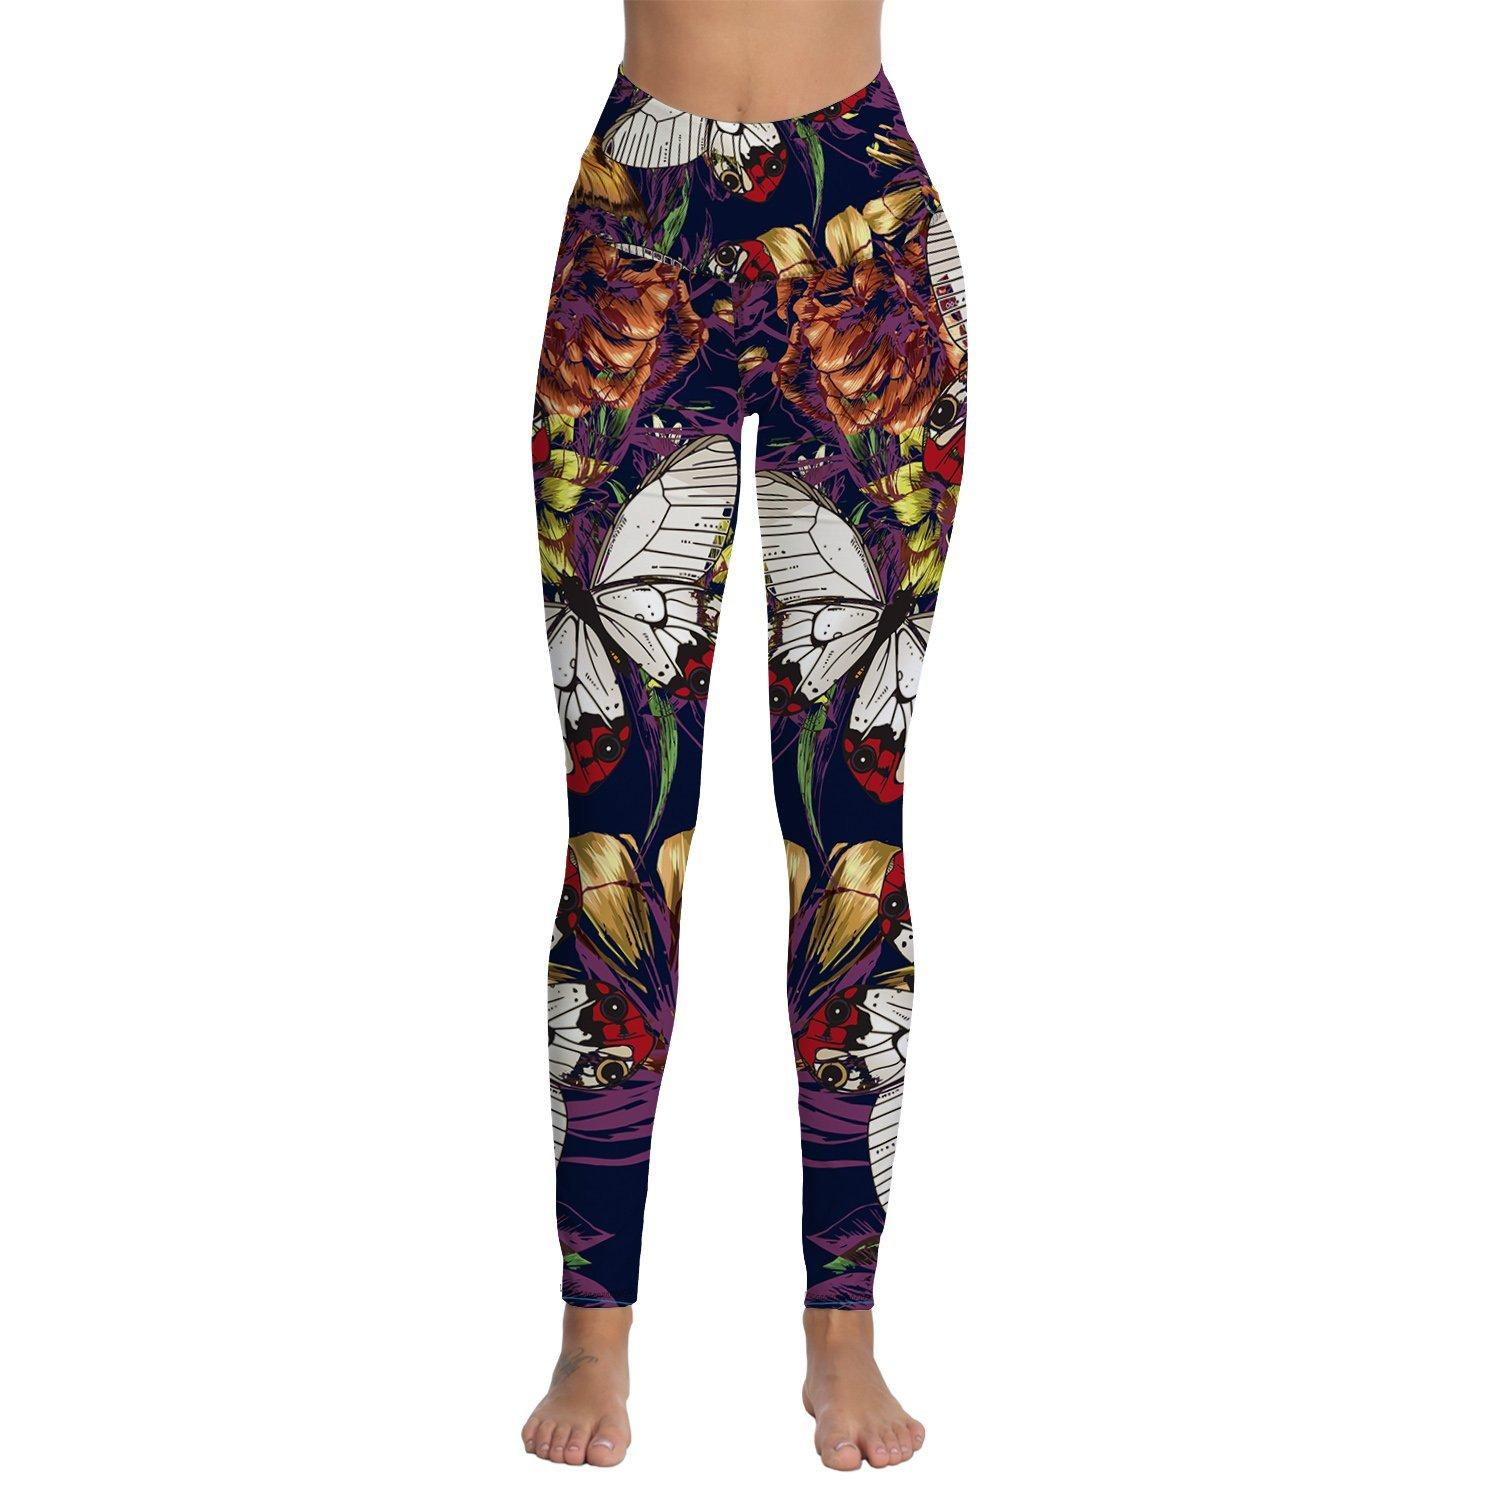 f9ff43485d3b21 2019 Womens Printed High Waisted Yoga Workout Leggings Thin Capris Pants  From Superfeel, $31.69   DHgate.Com